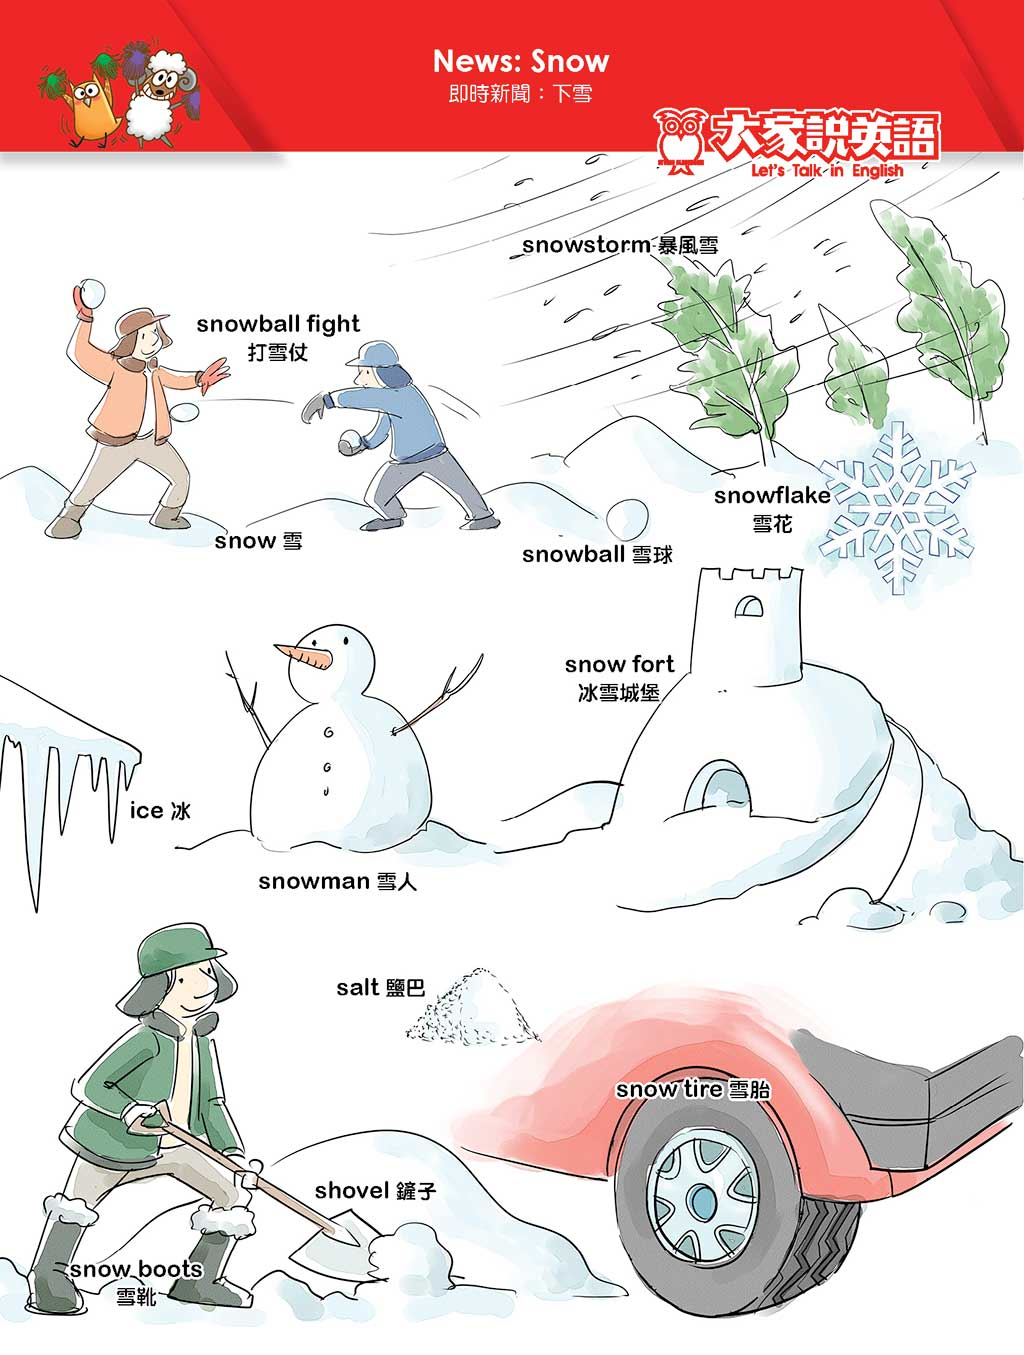 【VisualEnglish】News: Snow